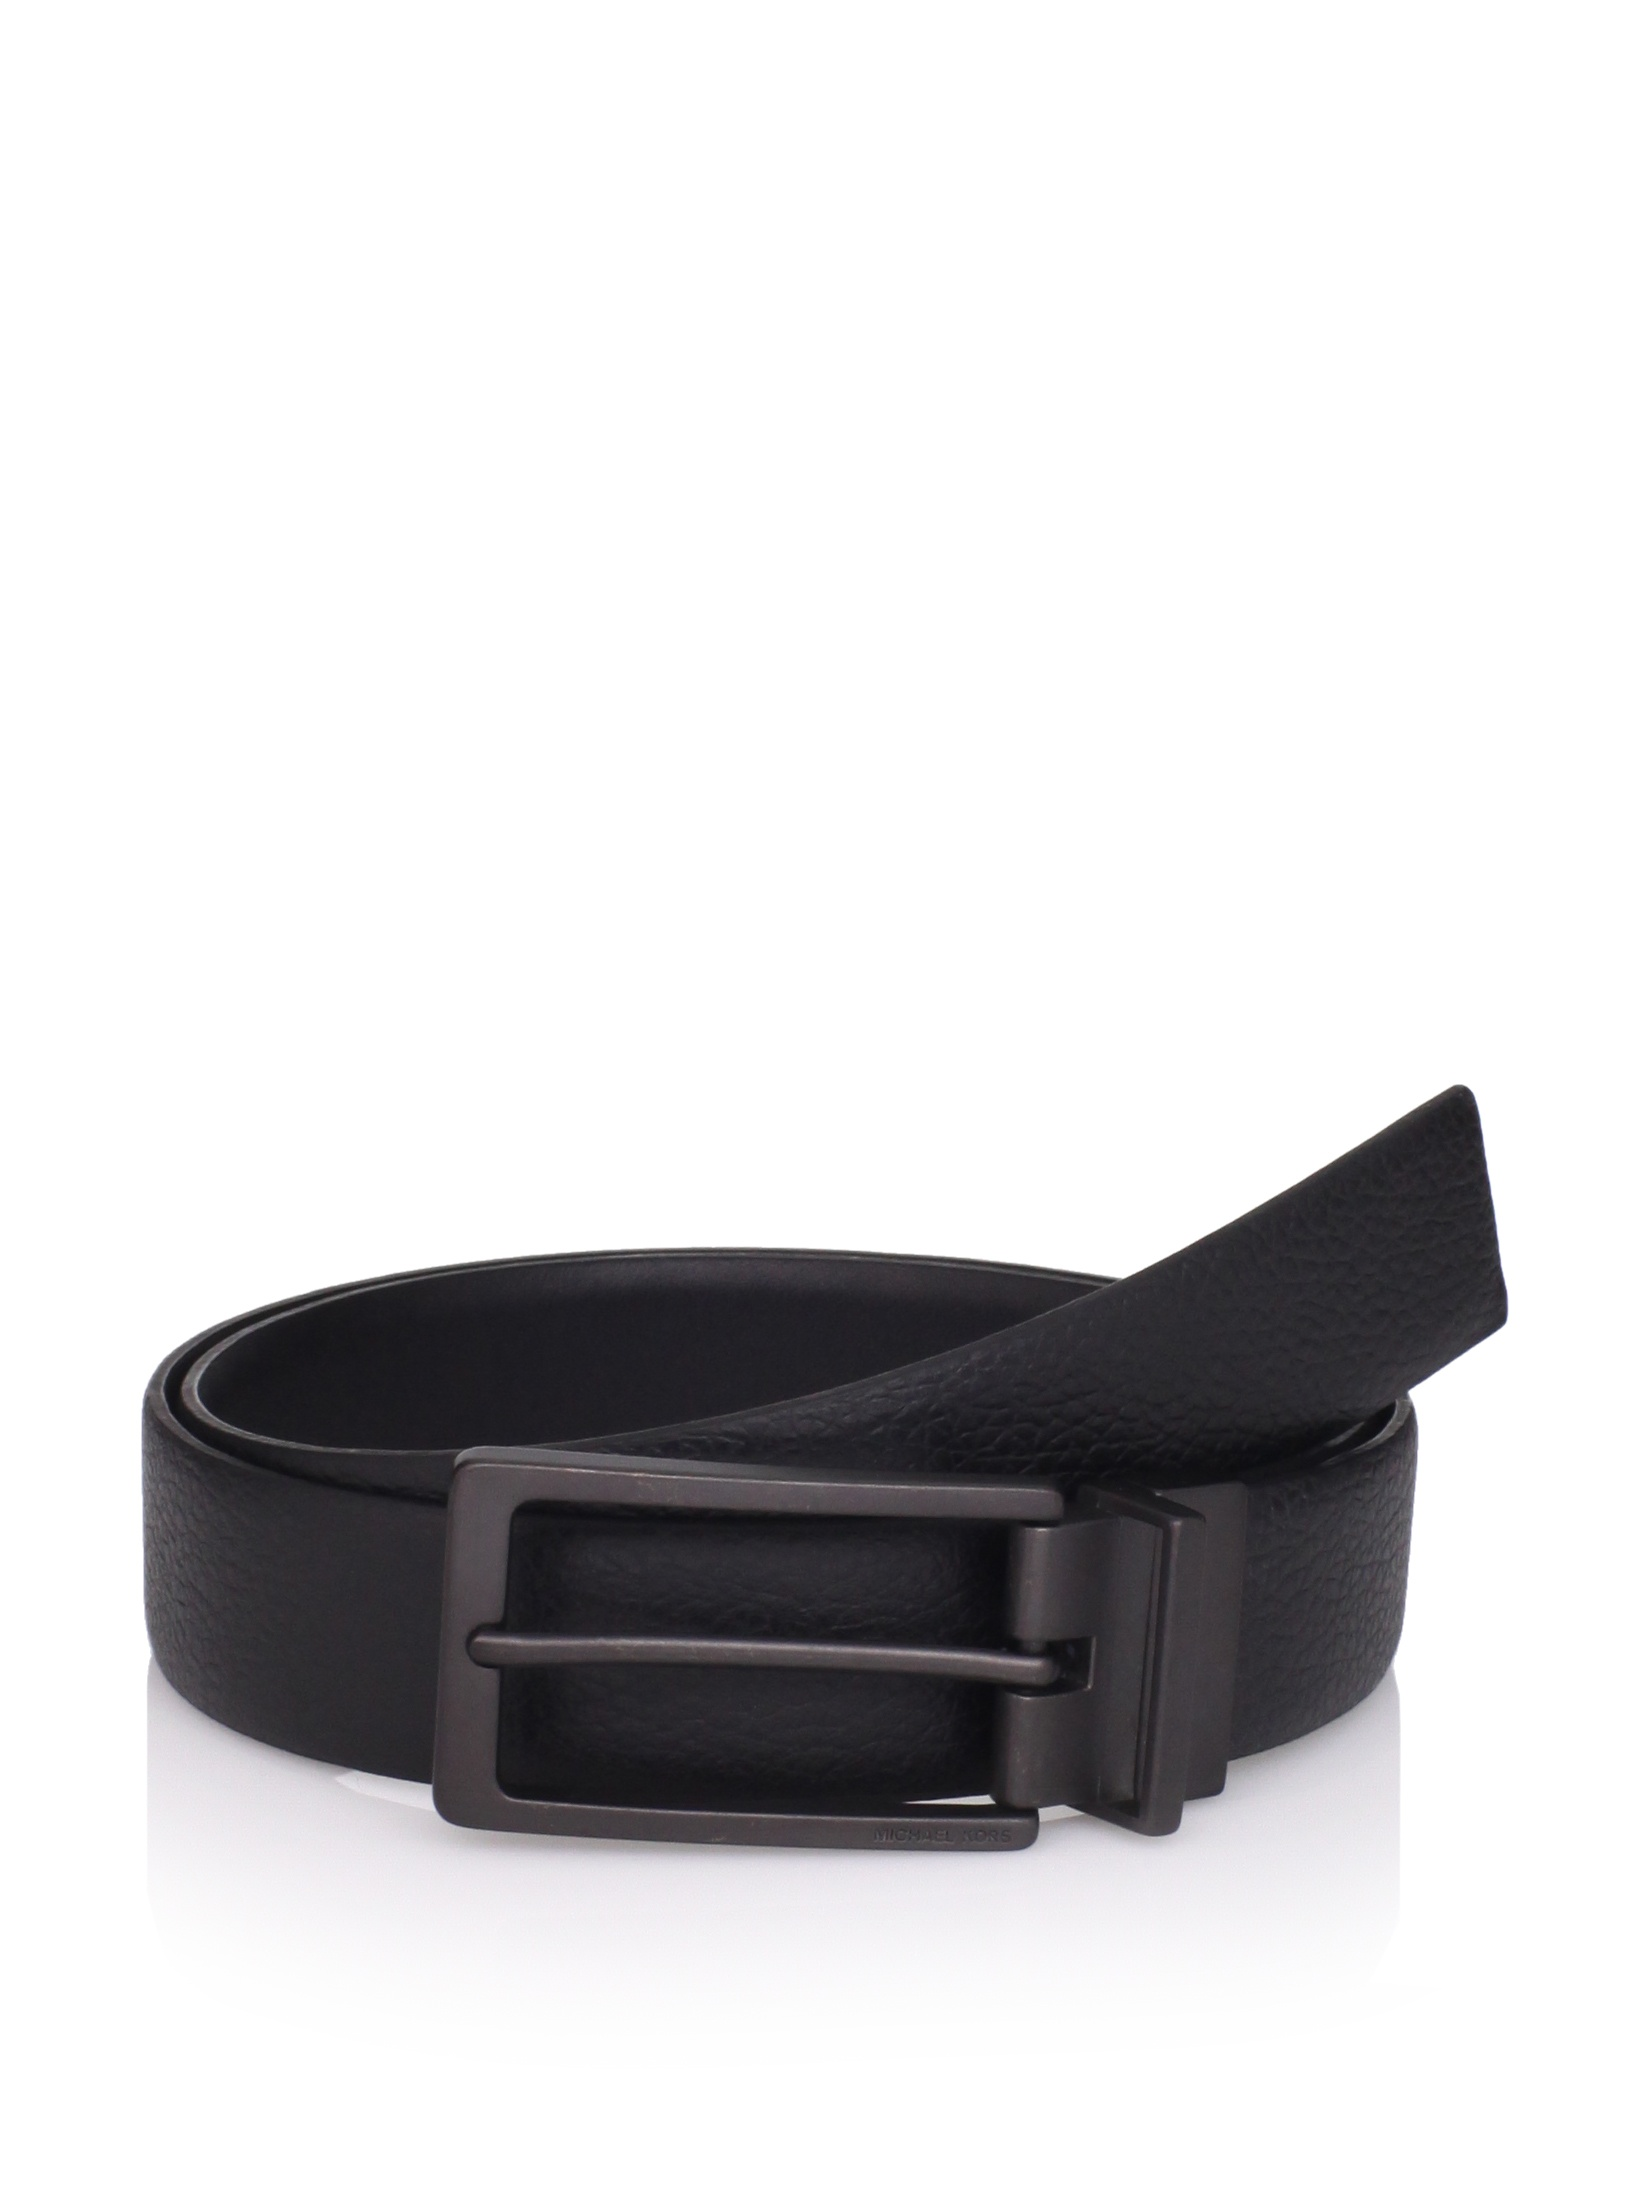 Michael Kors Men's Reversible Belt (Black)